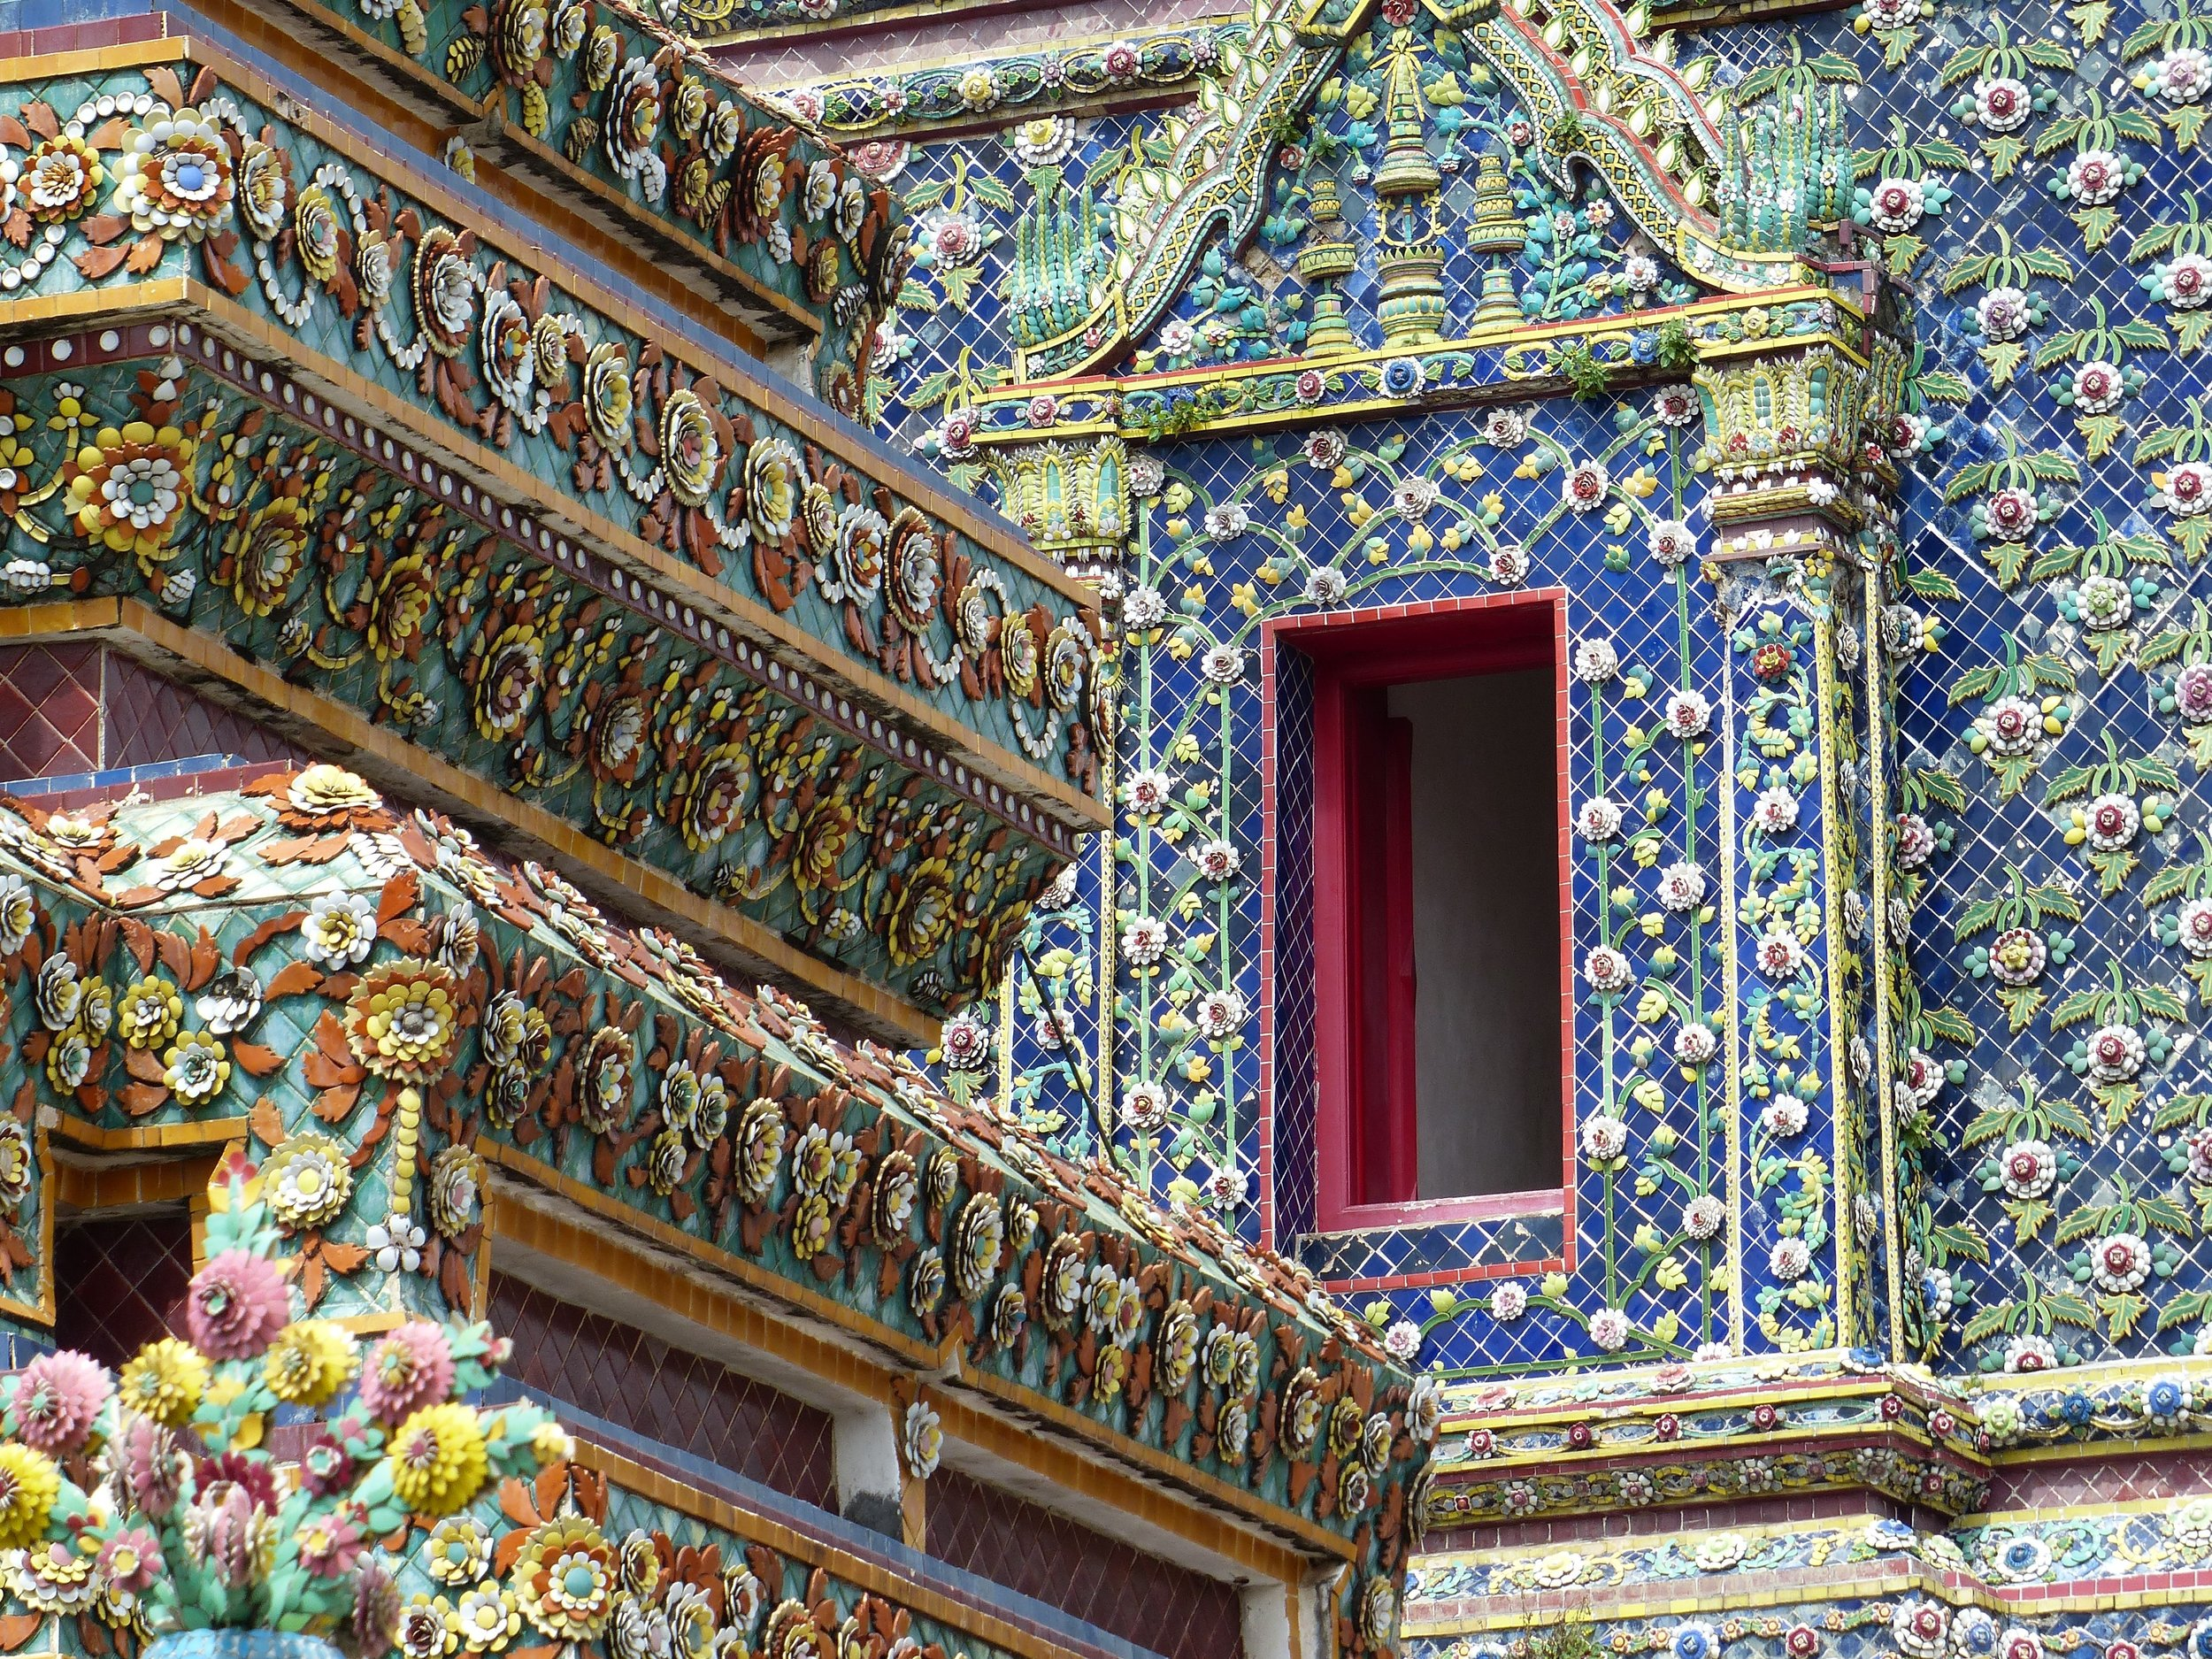 Wat pho temple, one of two temples we saw covered completely with tile